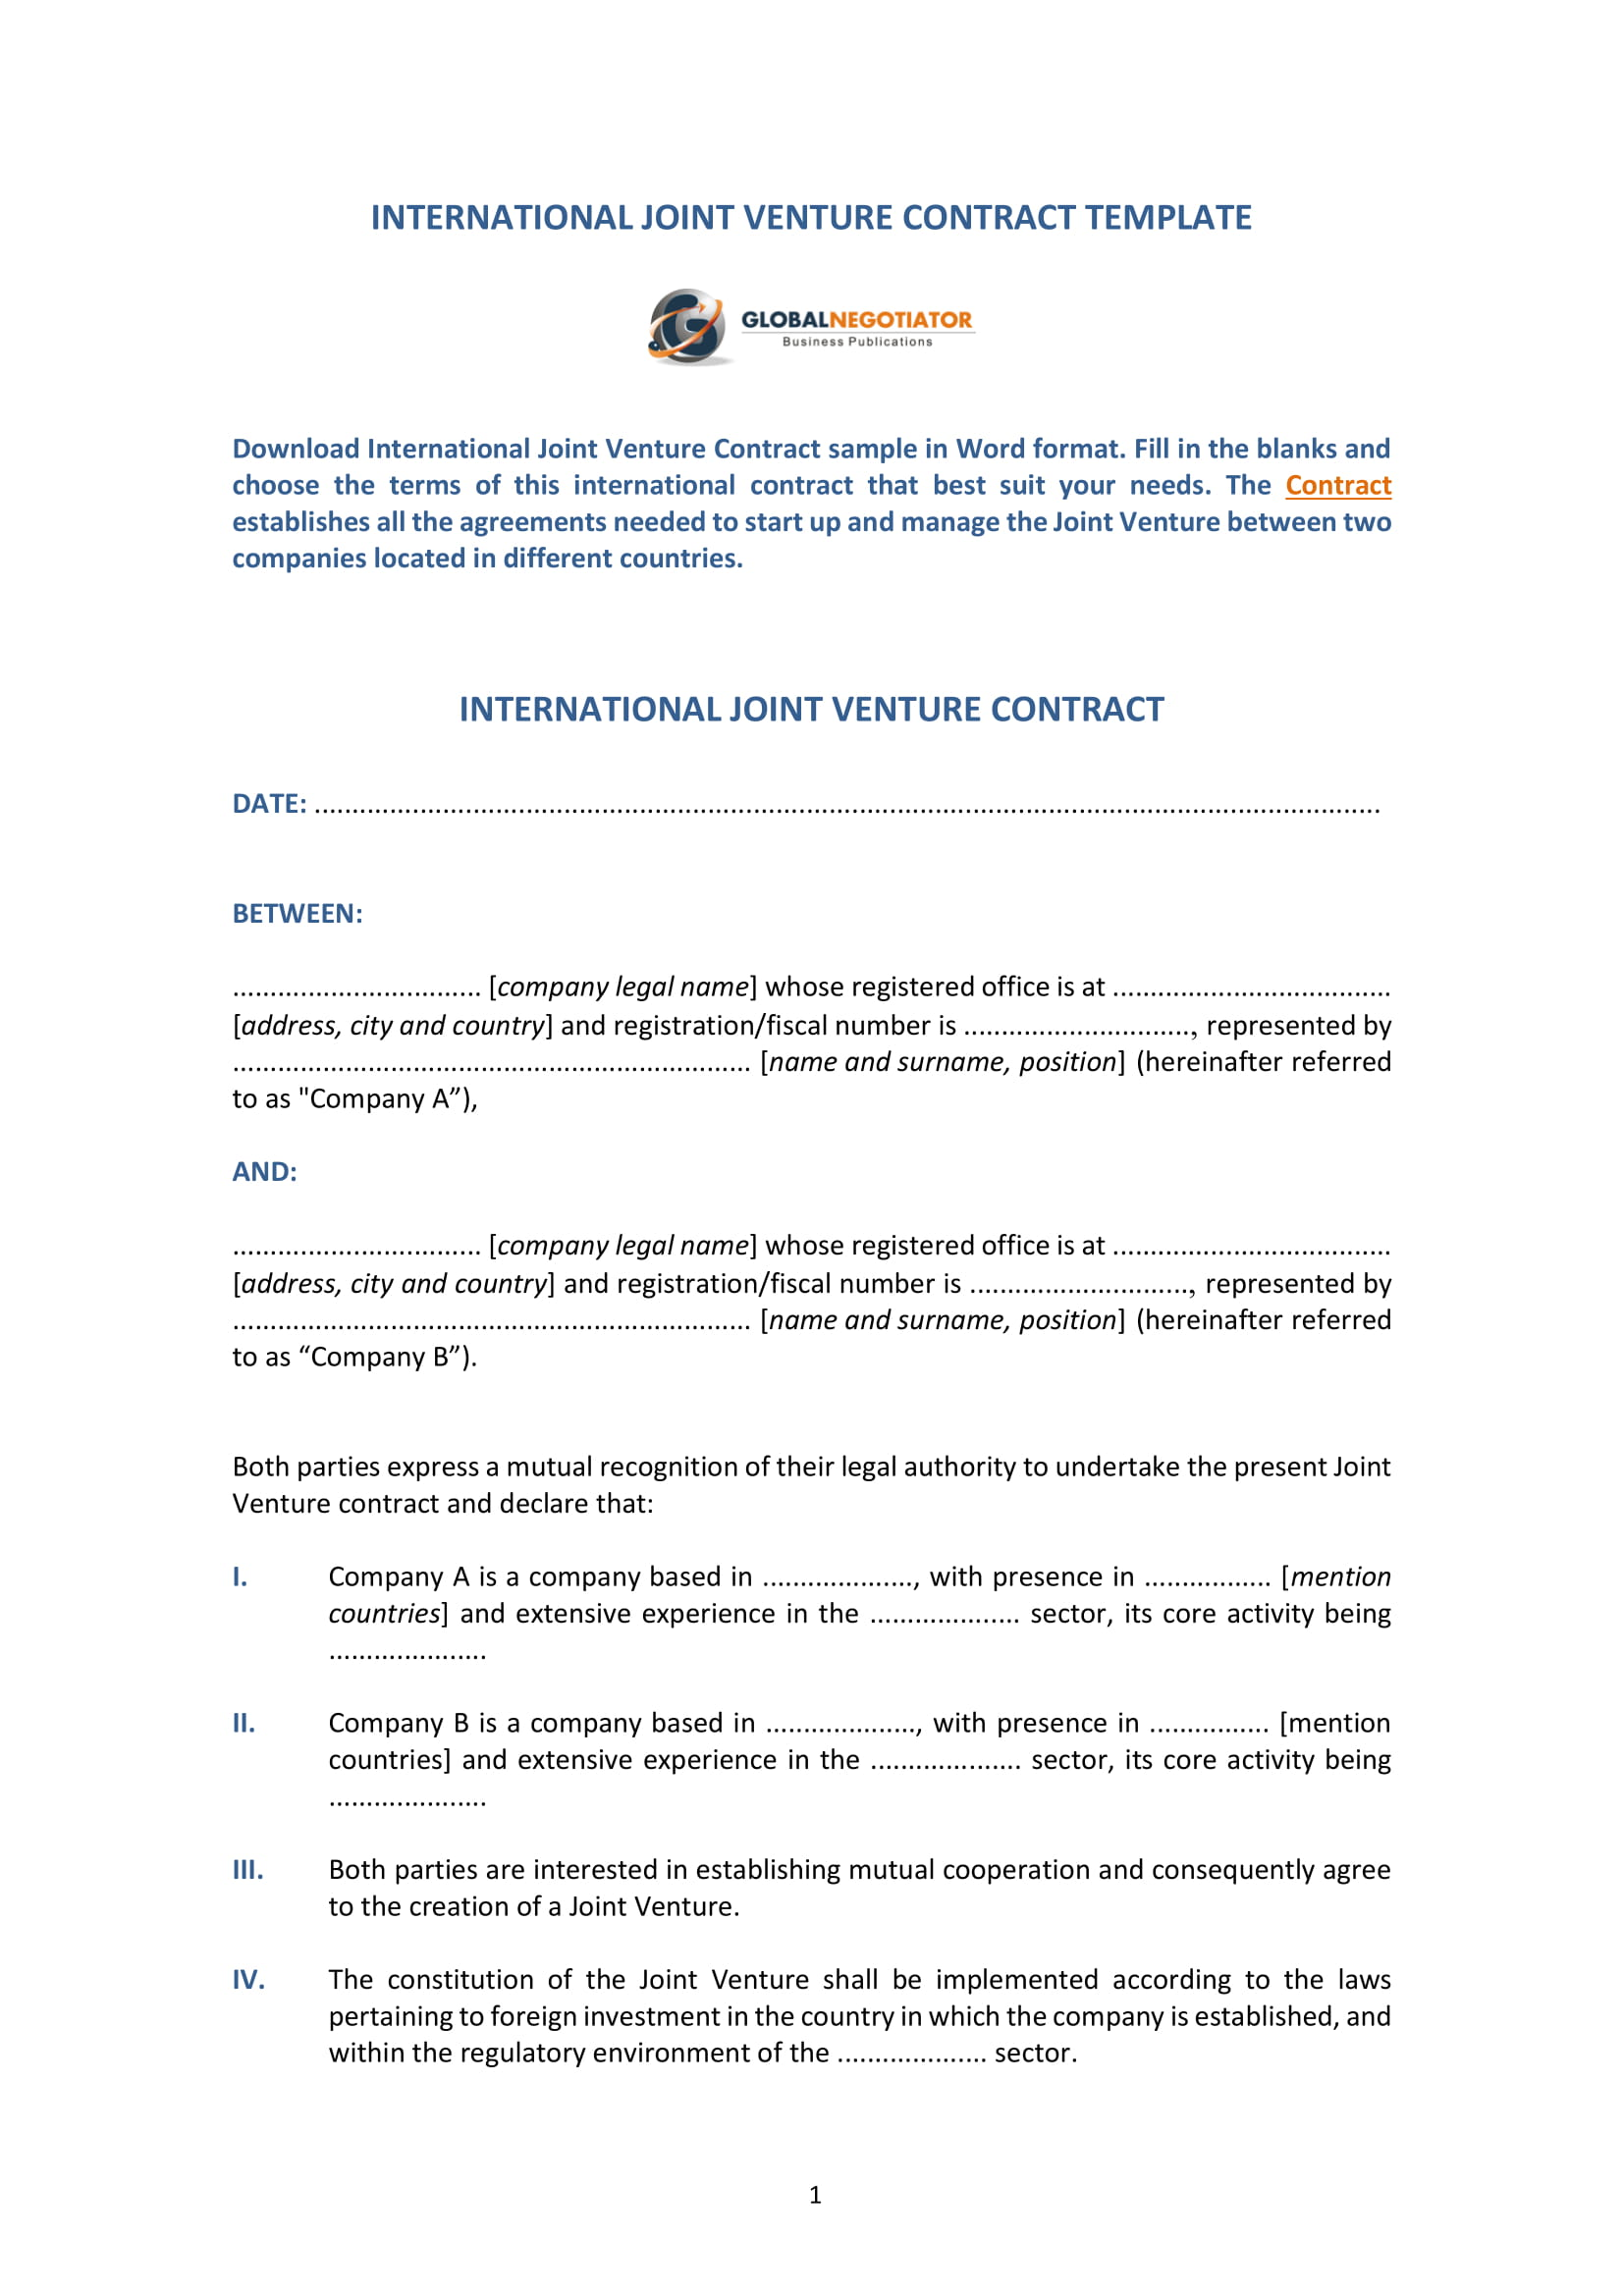 International Joint Venture Contract Template 1